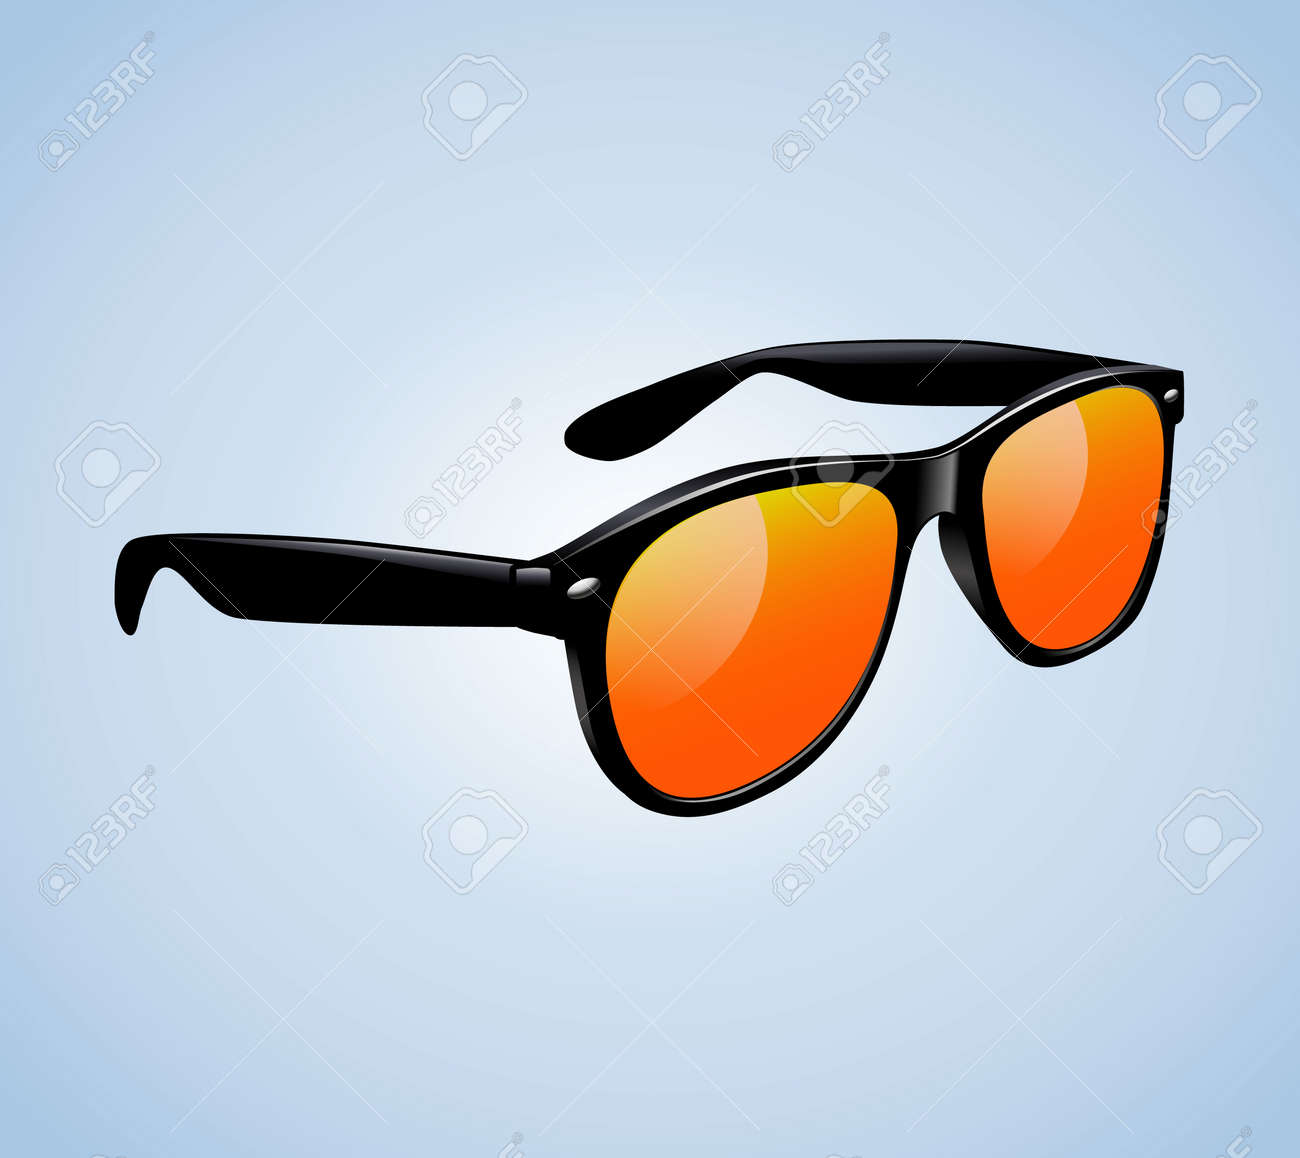 Classic Vintage Sunglasses Realistic Isolated Vector Illustration - 172238238